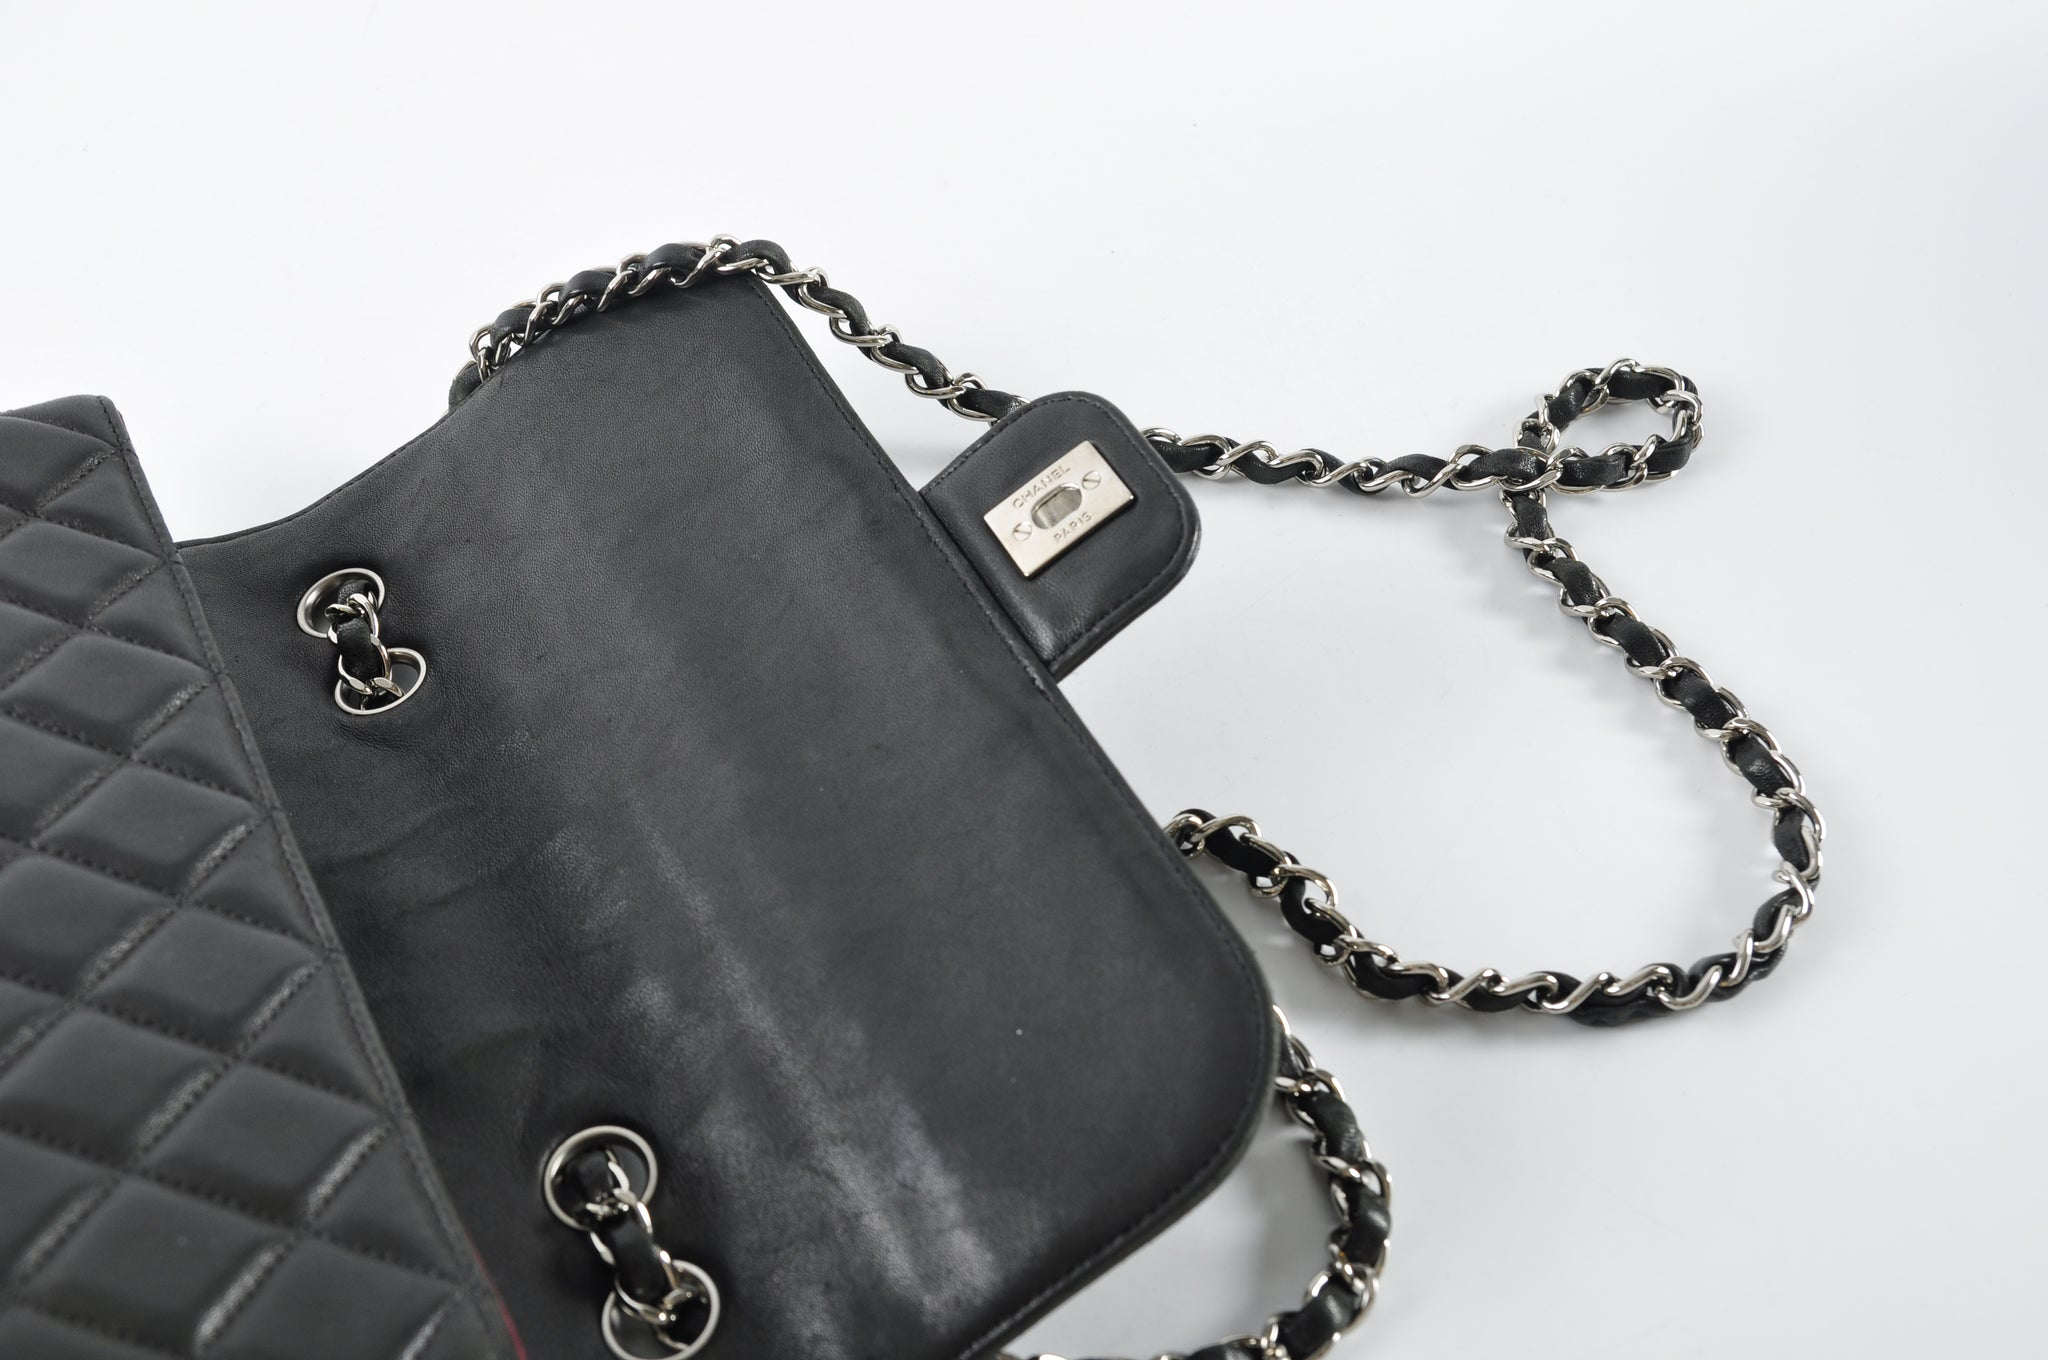 Chanel Black Lambskin Coco Flap in Silver Hardware - Glampot